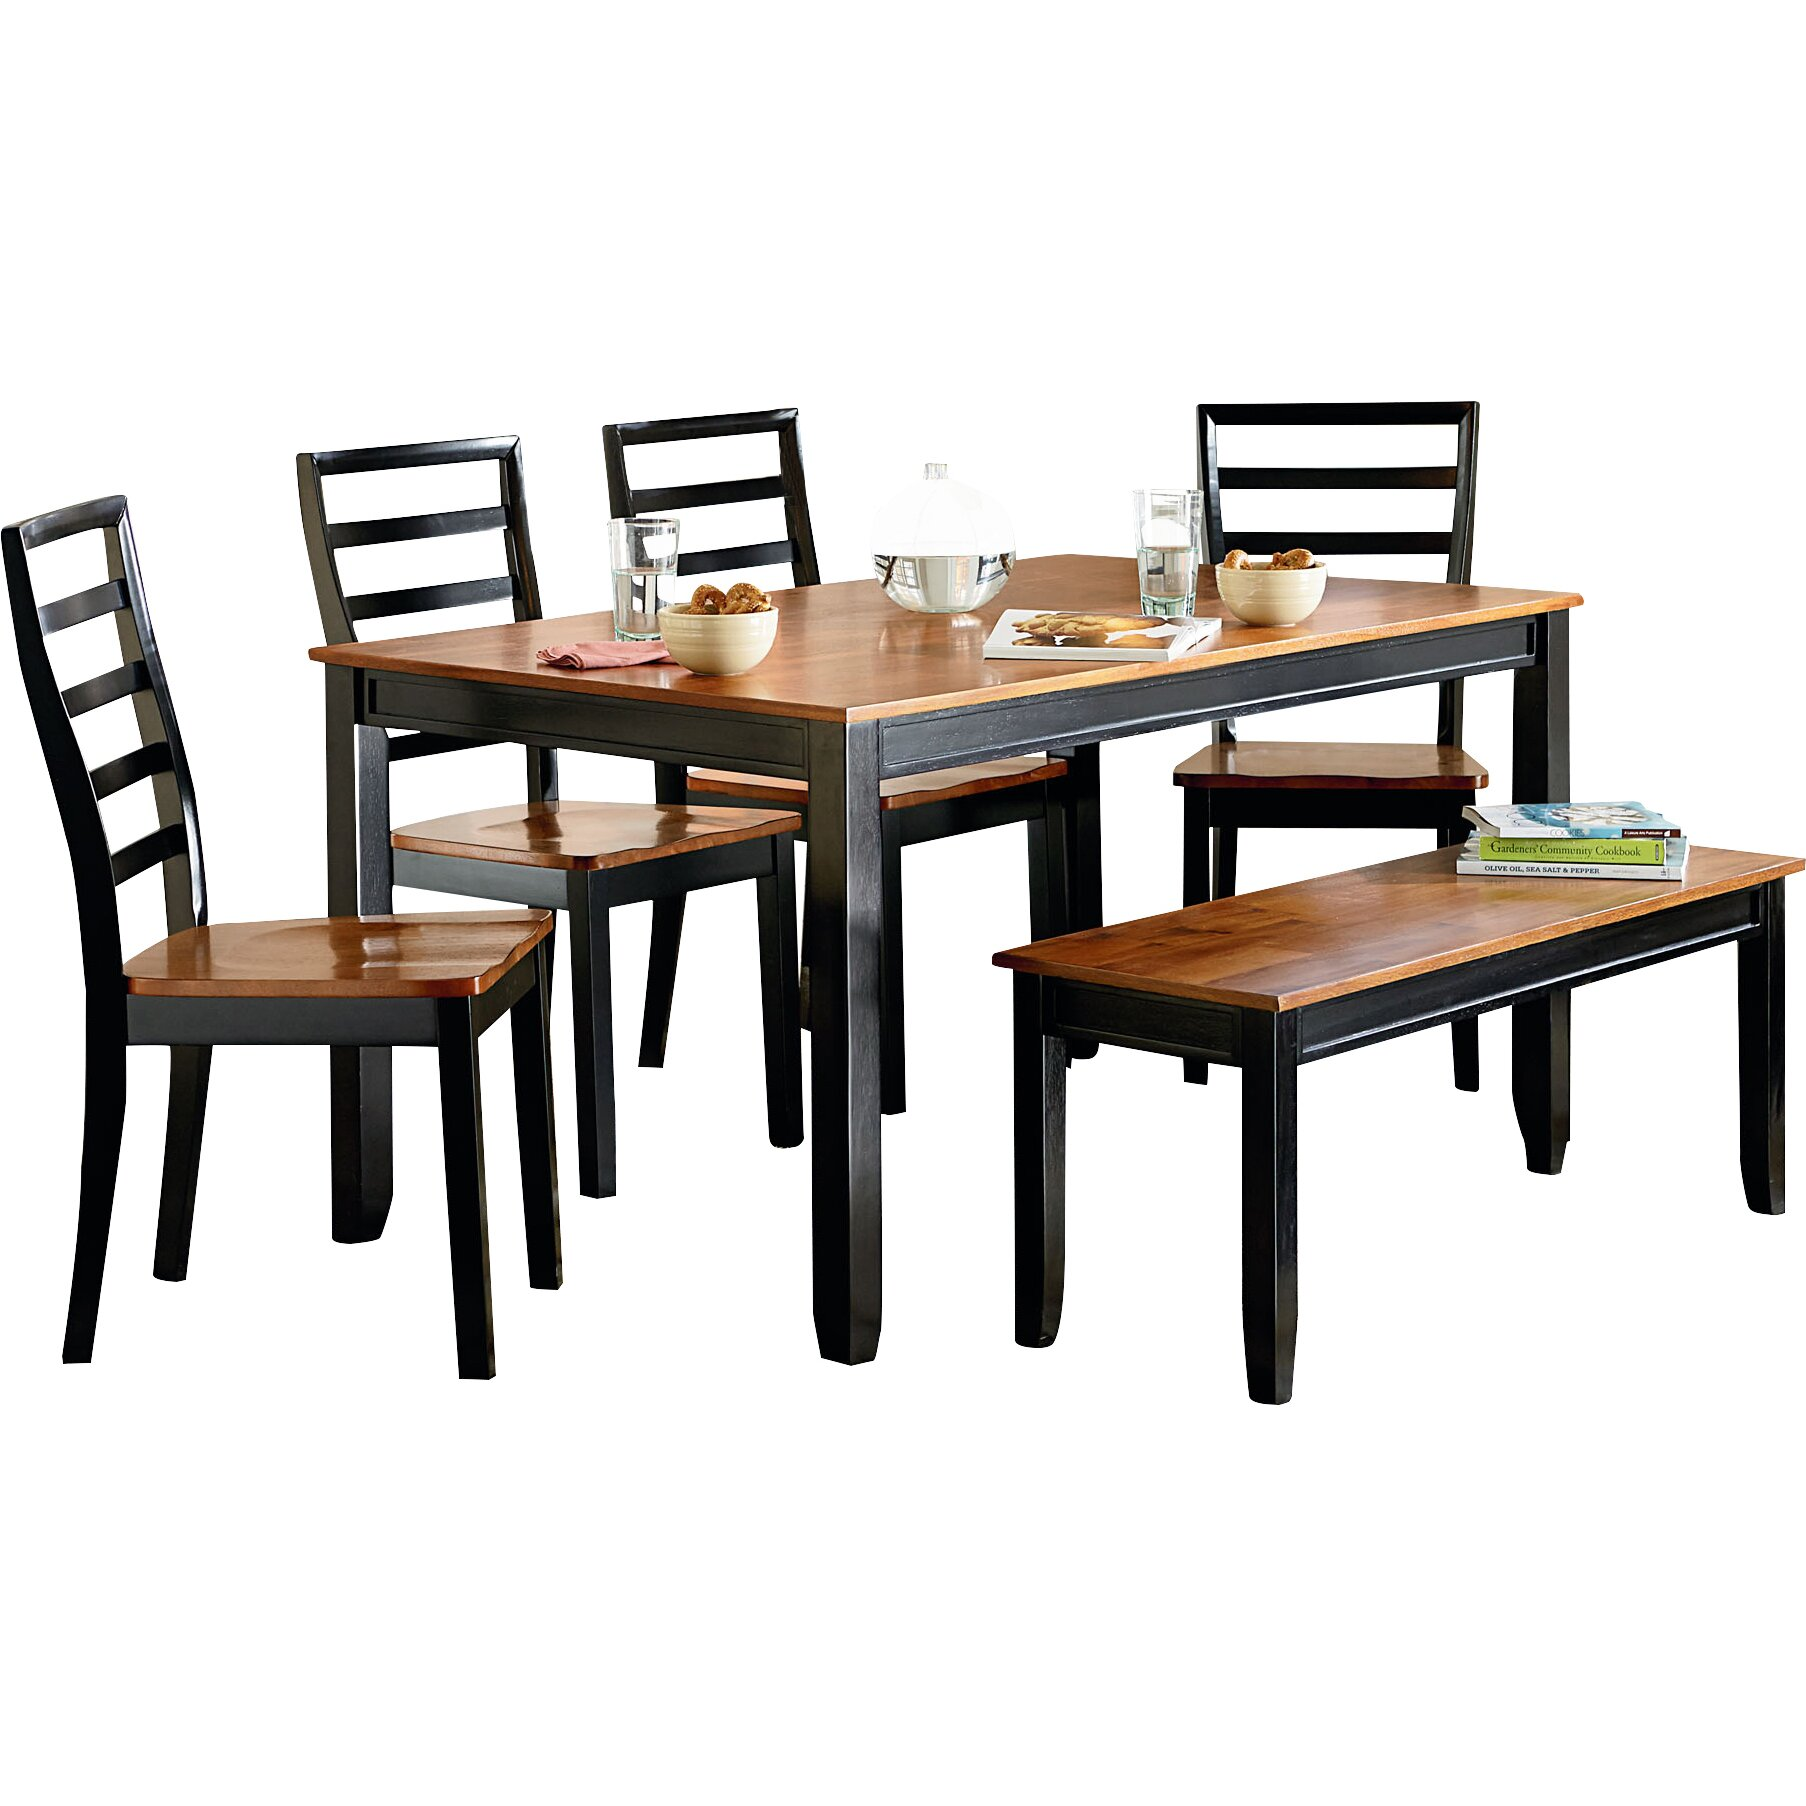 Standard furniture lexford 5 piece dining set reviews for Breakfast sets furniture